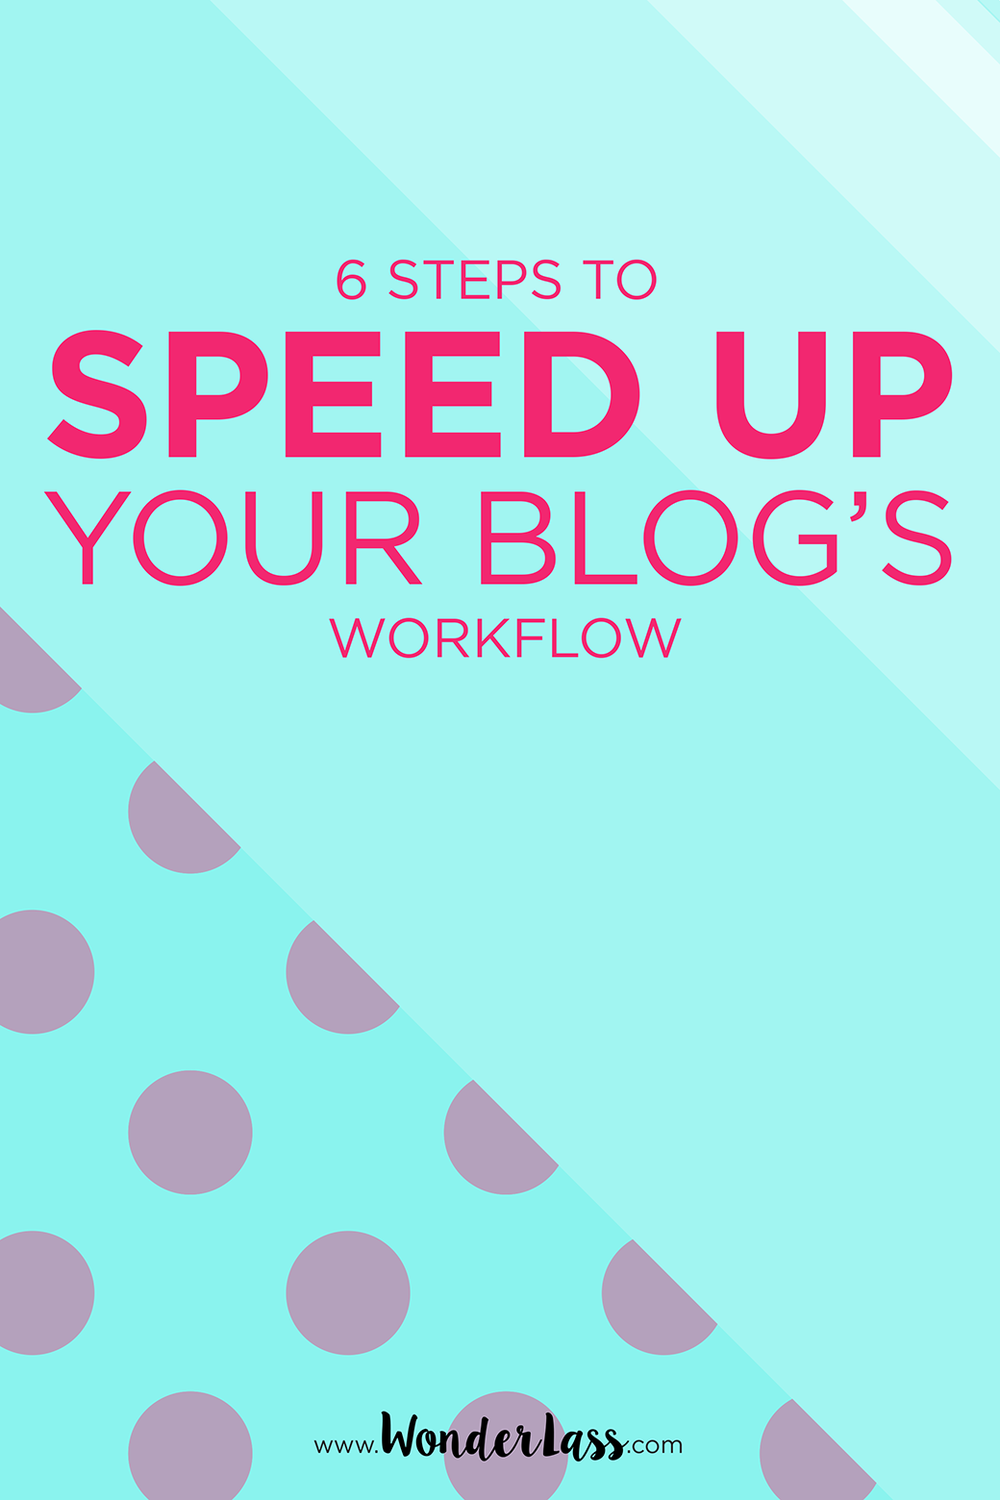 Click through to learn how to speed up your blog's workflow with 6 easy steps! (And gain hours of your life back!)